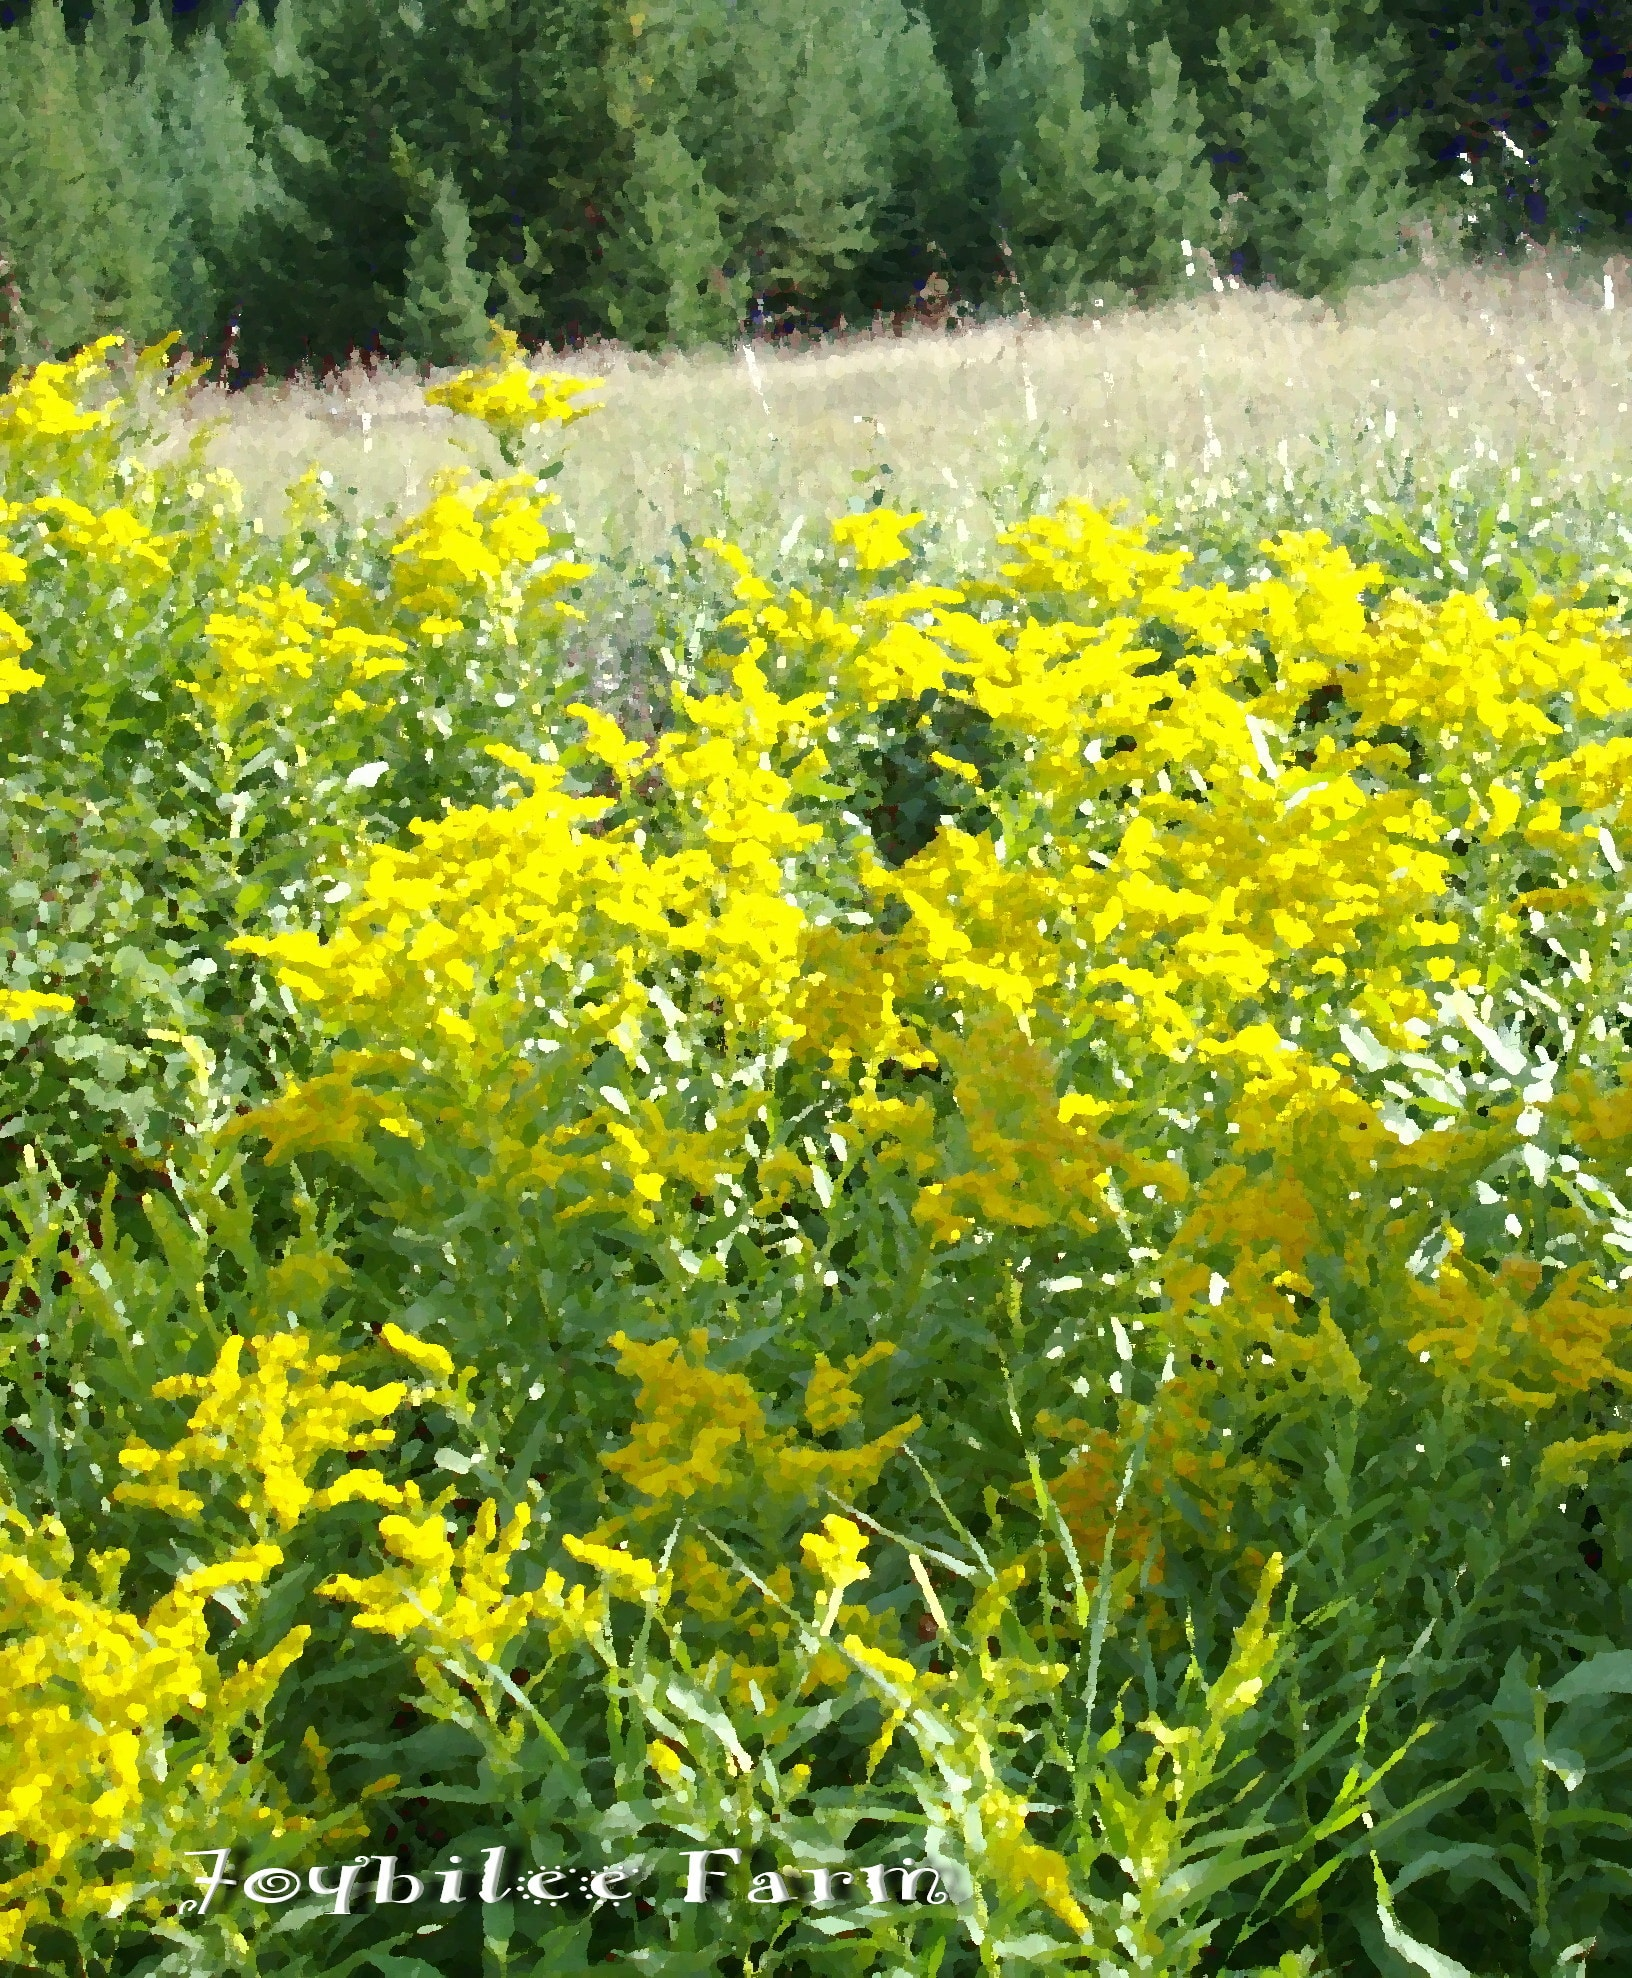 Golden rod: properties, use and contraindications 88